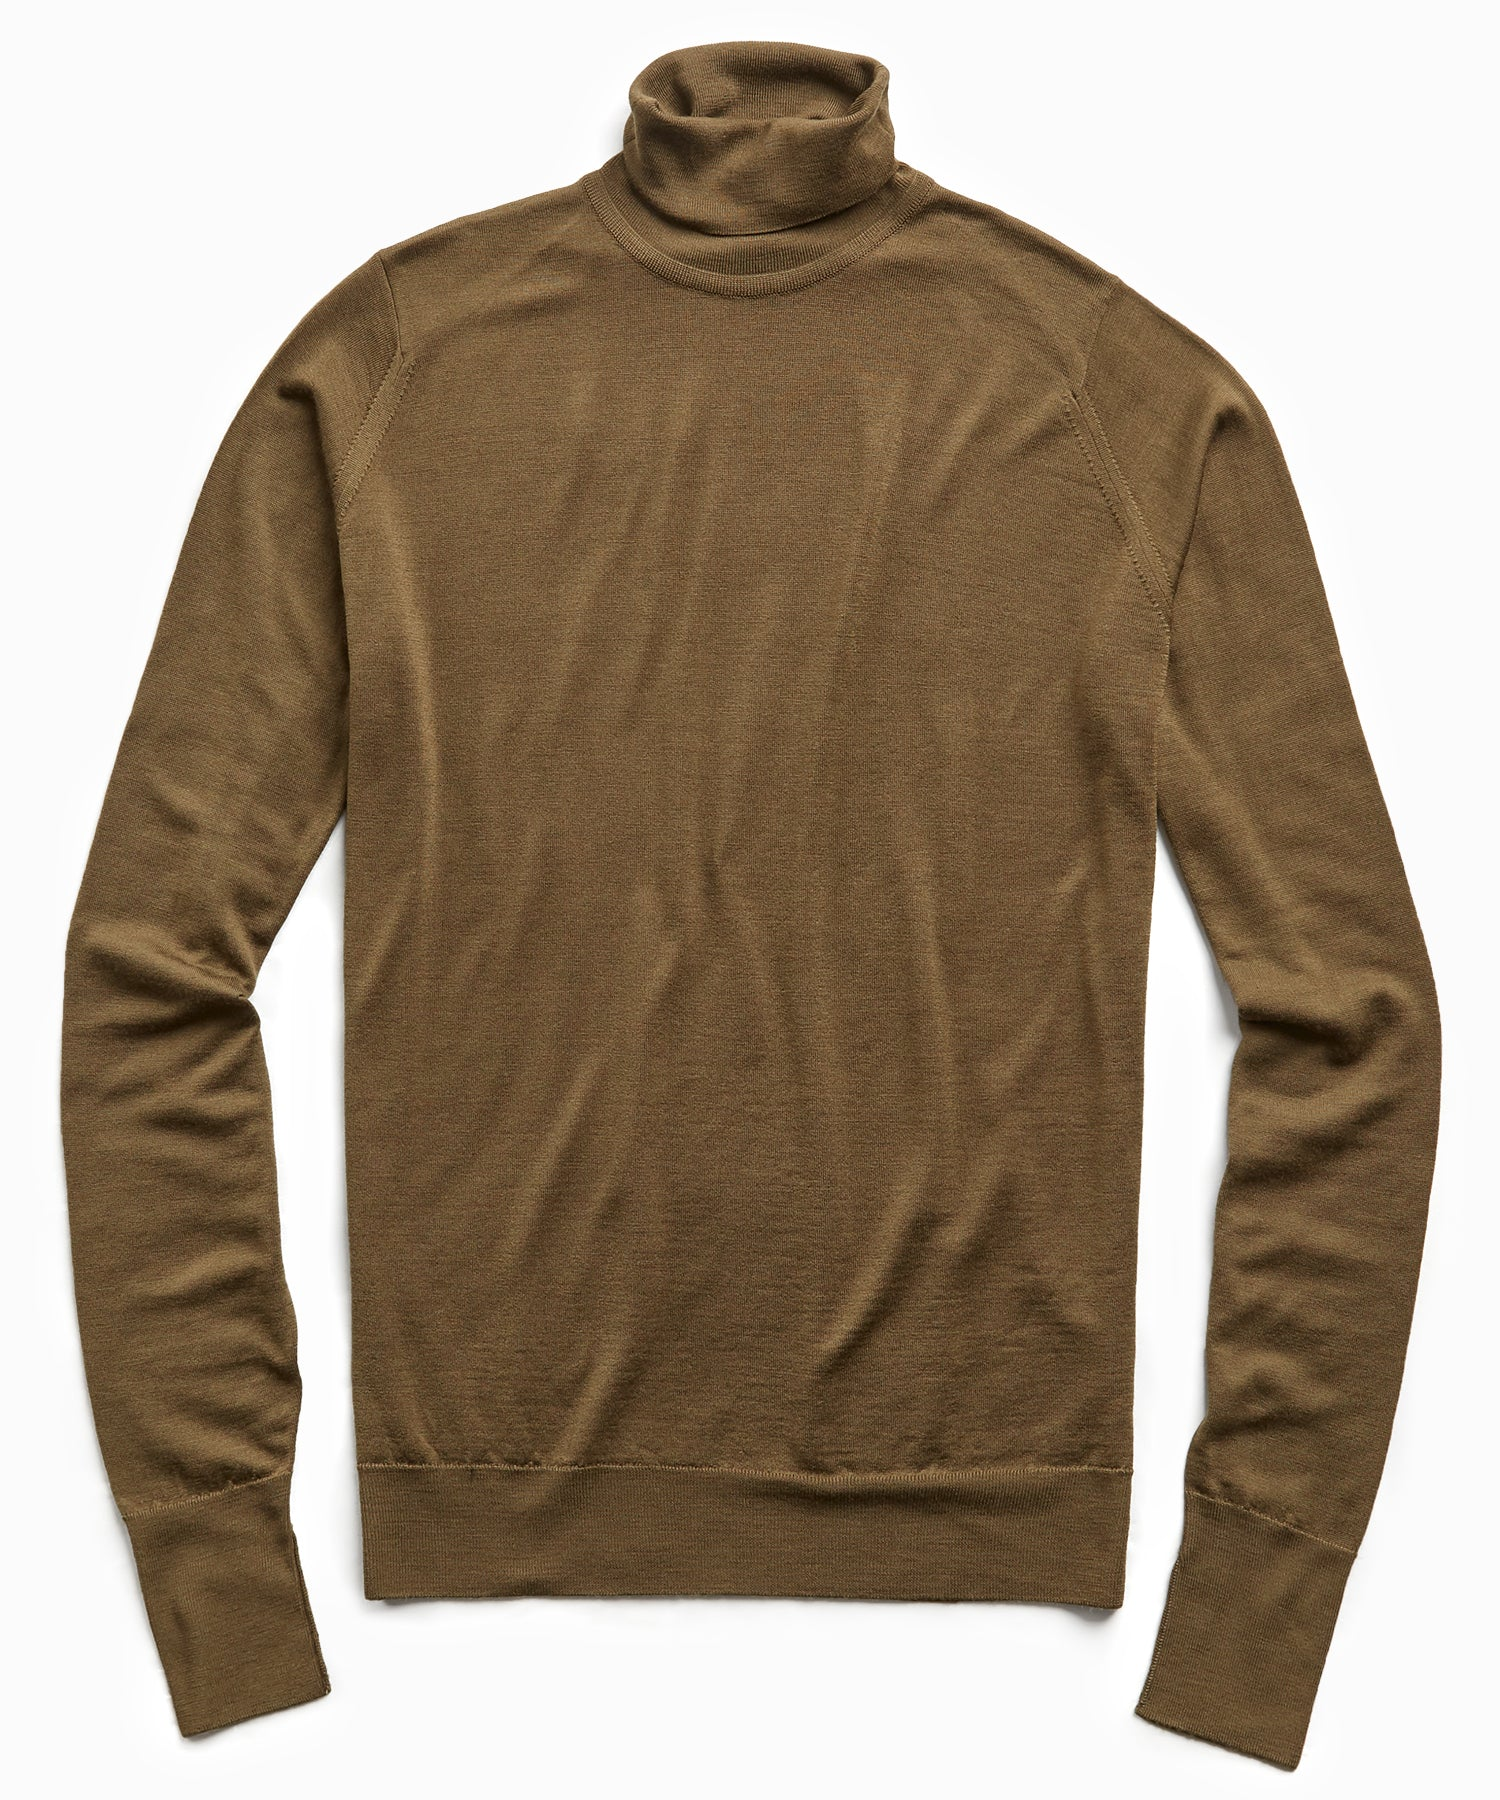 John Smedley Easy Fit Turtleneck in Khaki